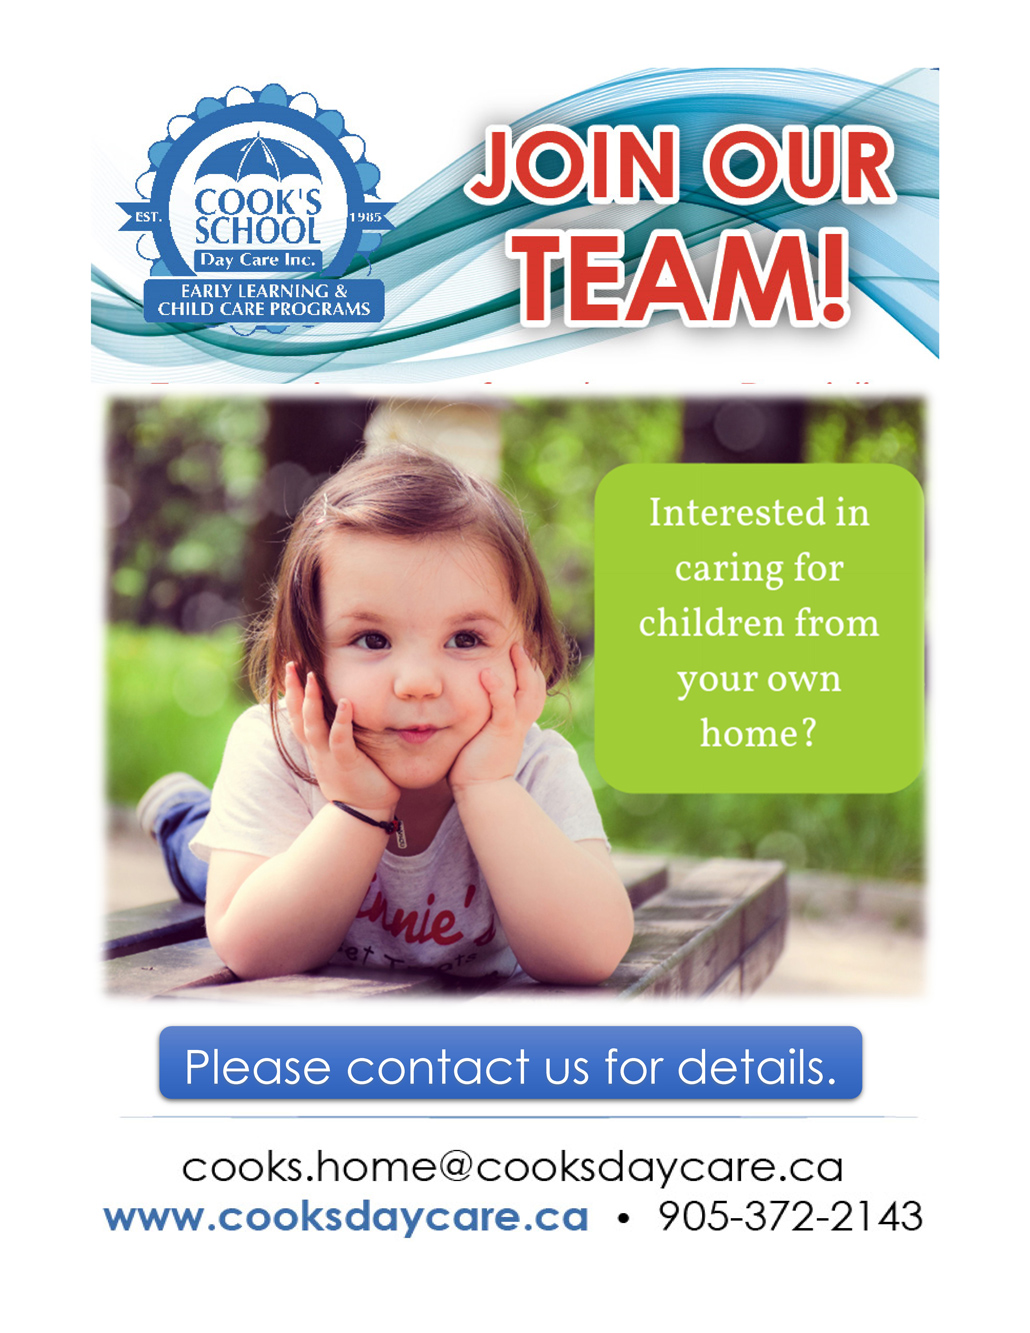 Join our home care team. Contact us today at cooks.home@cooksdaycare.ca